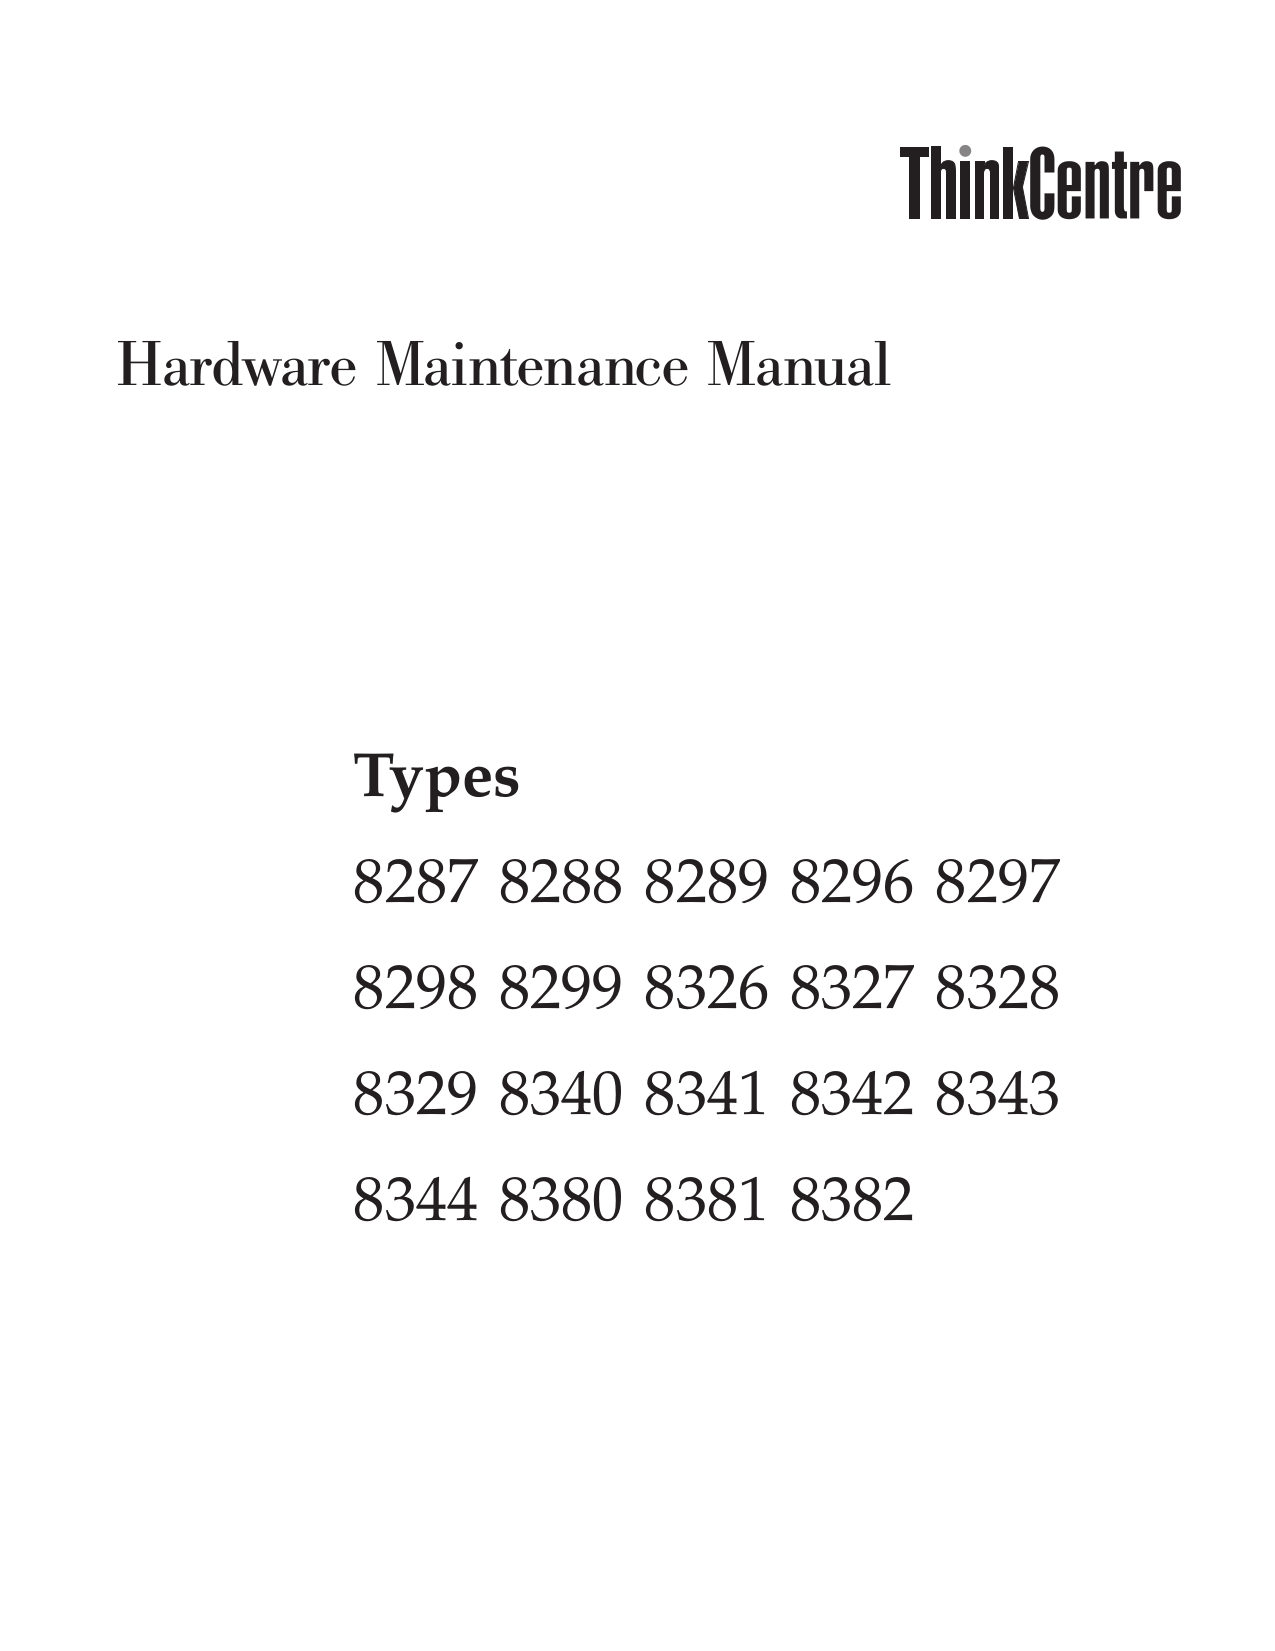 pdf for Lenovo Desktop ThinkCentre A52 8287 manual